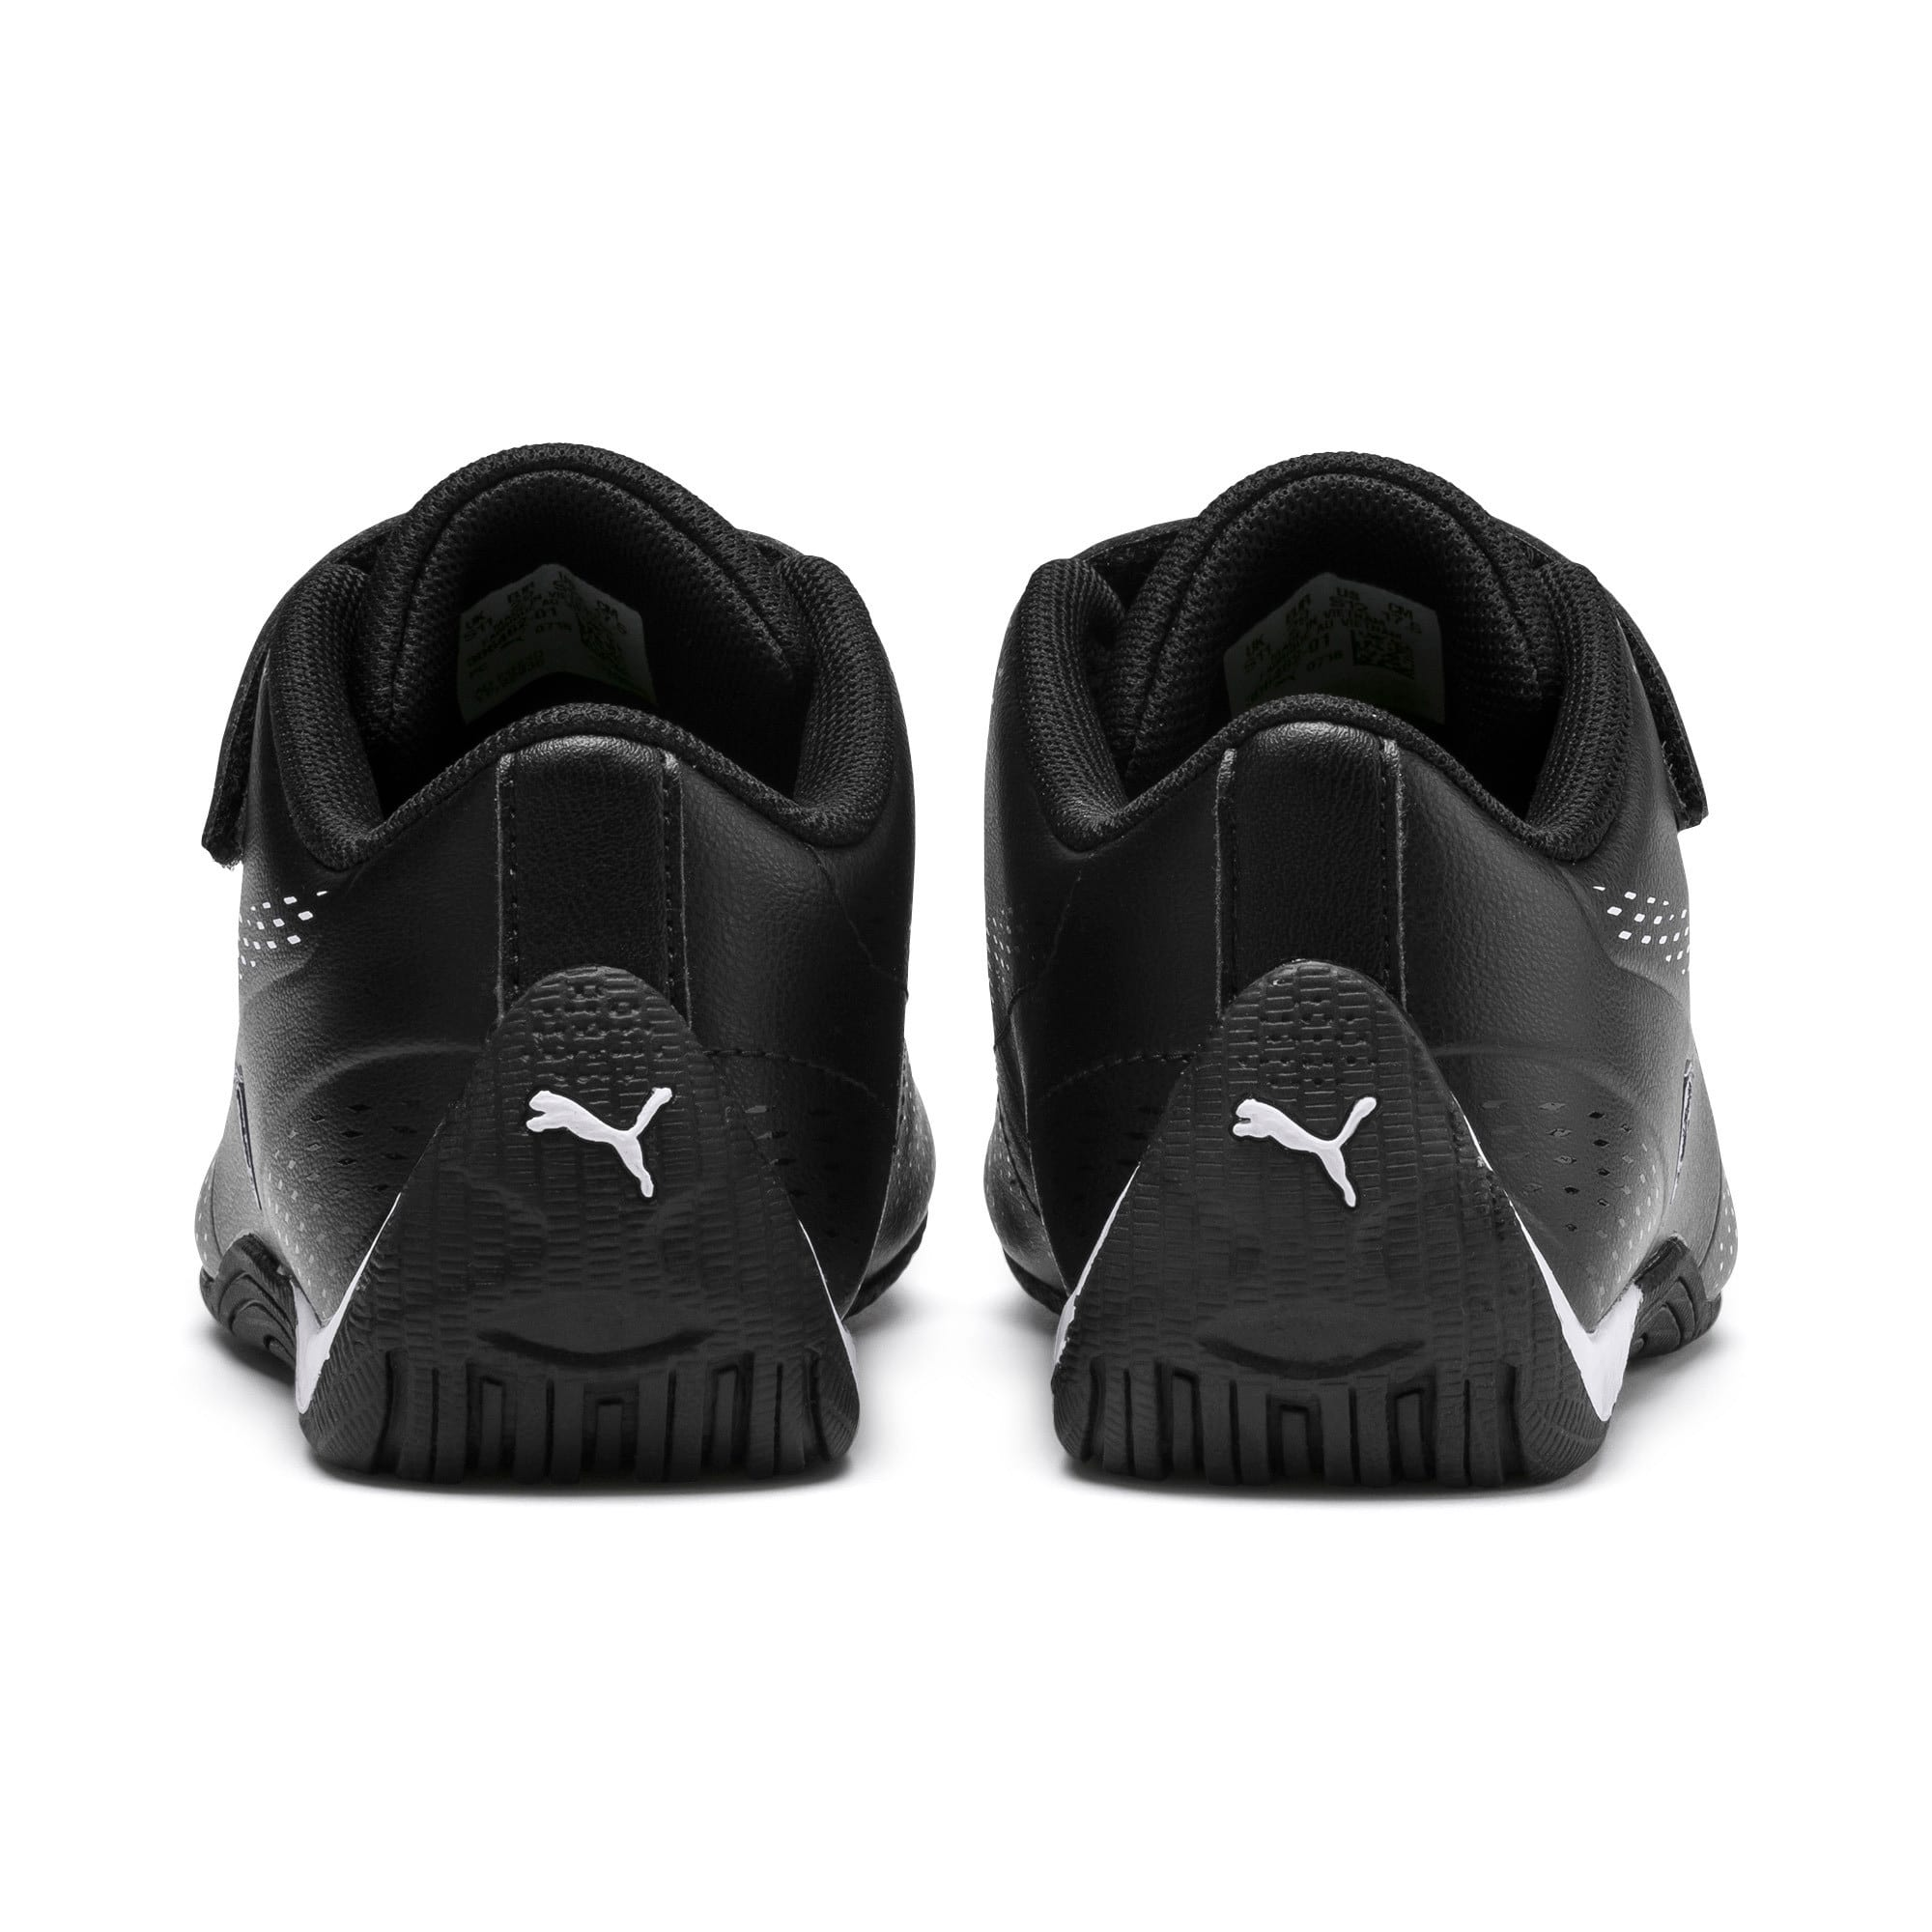 Thumbnail 3 of Ferrari Drift Cat 5 Ultra II V Kids' Trainers, Puma Black-Puma White, medium